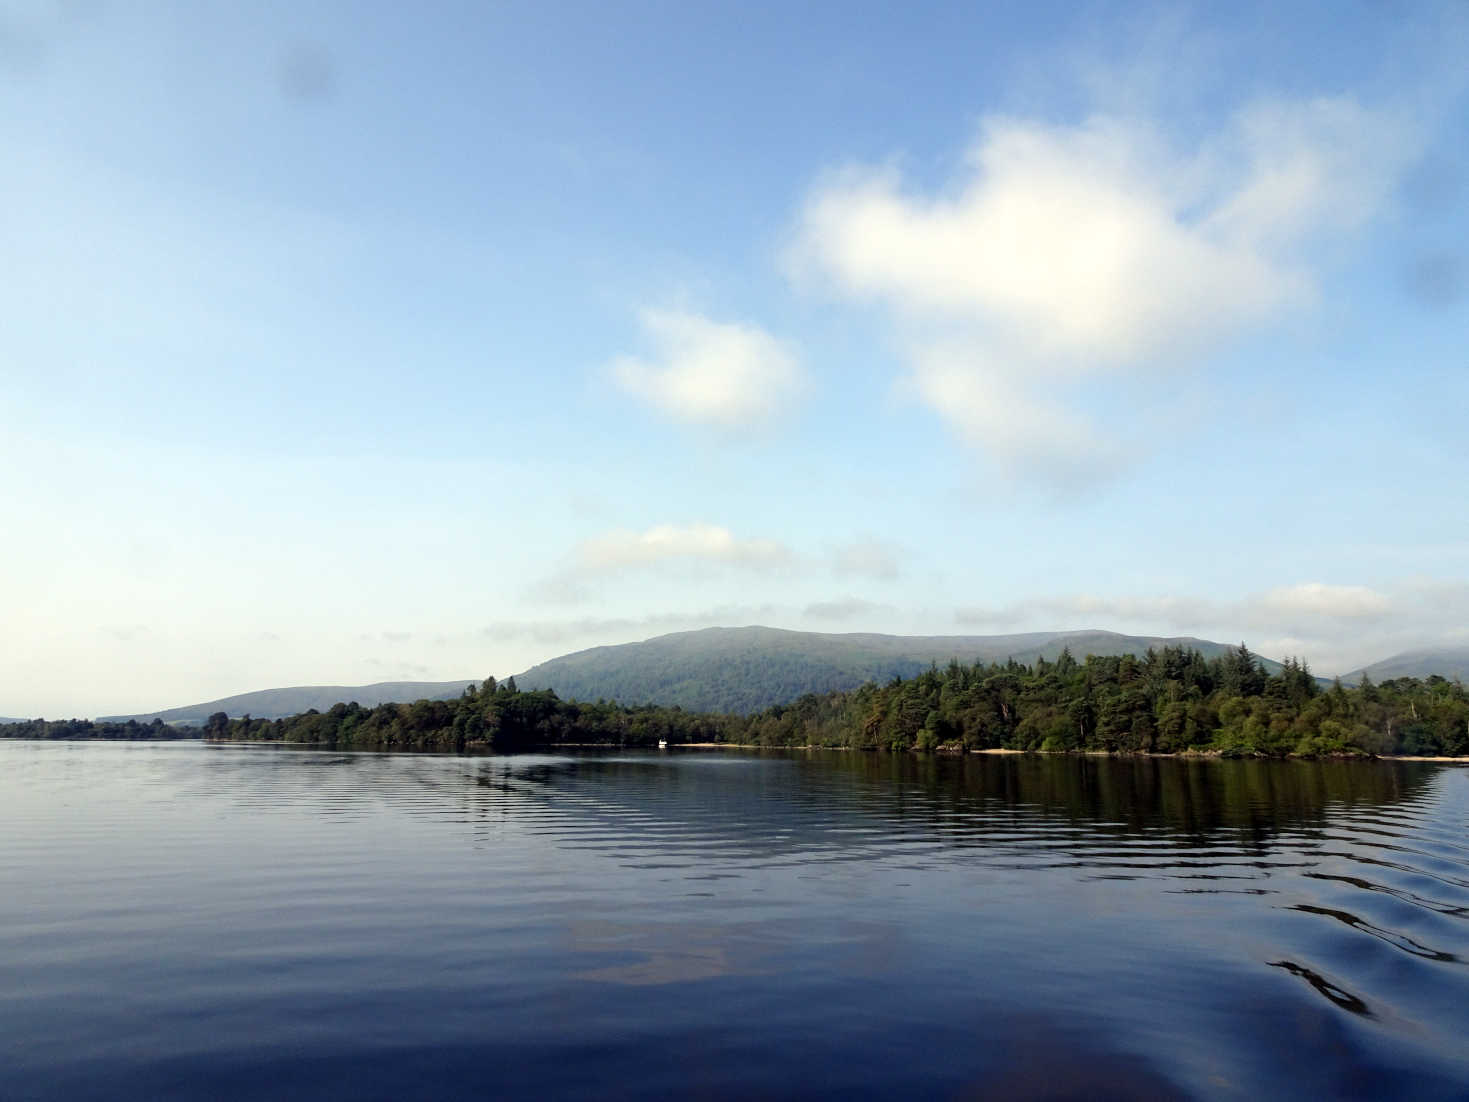 loch lommond west from boat